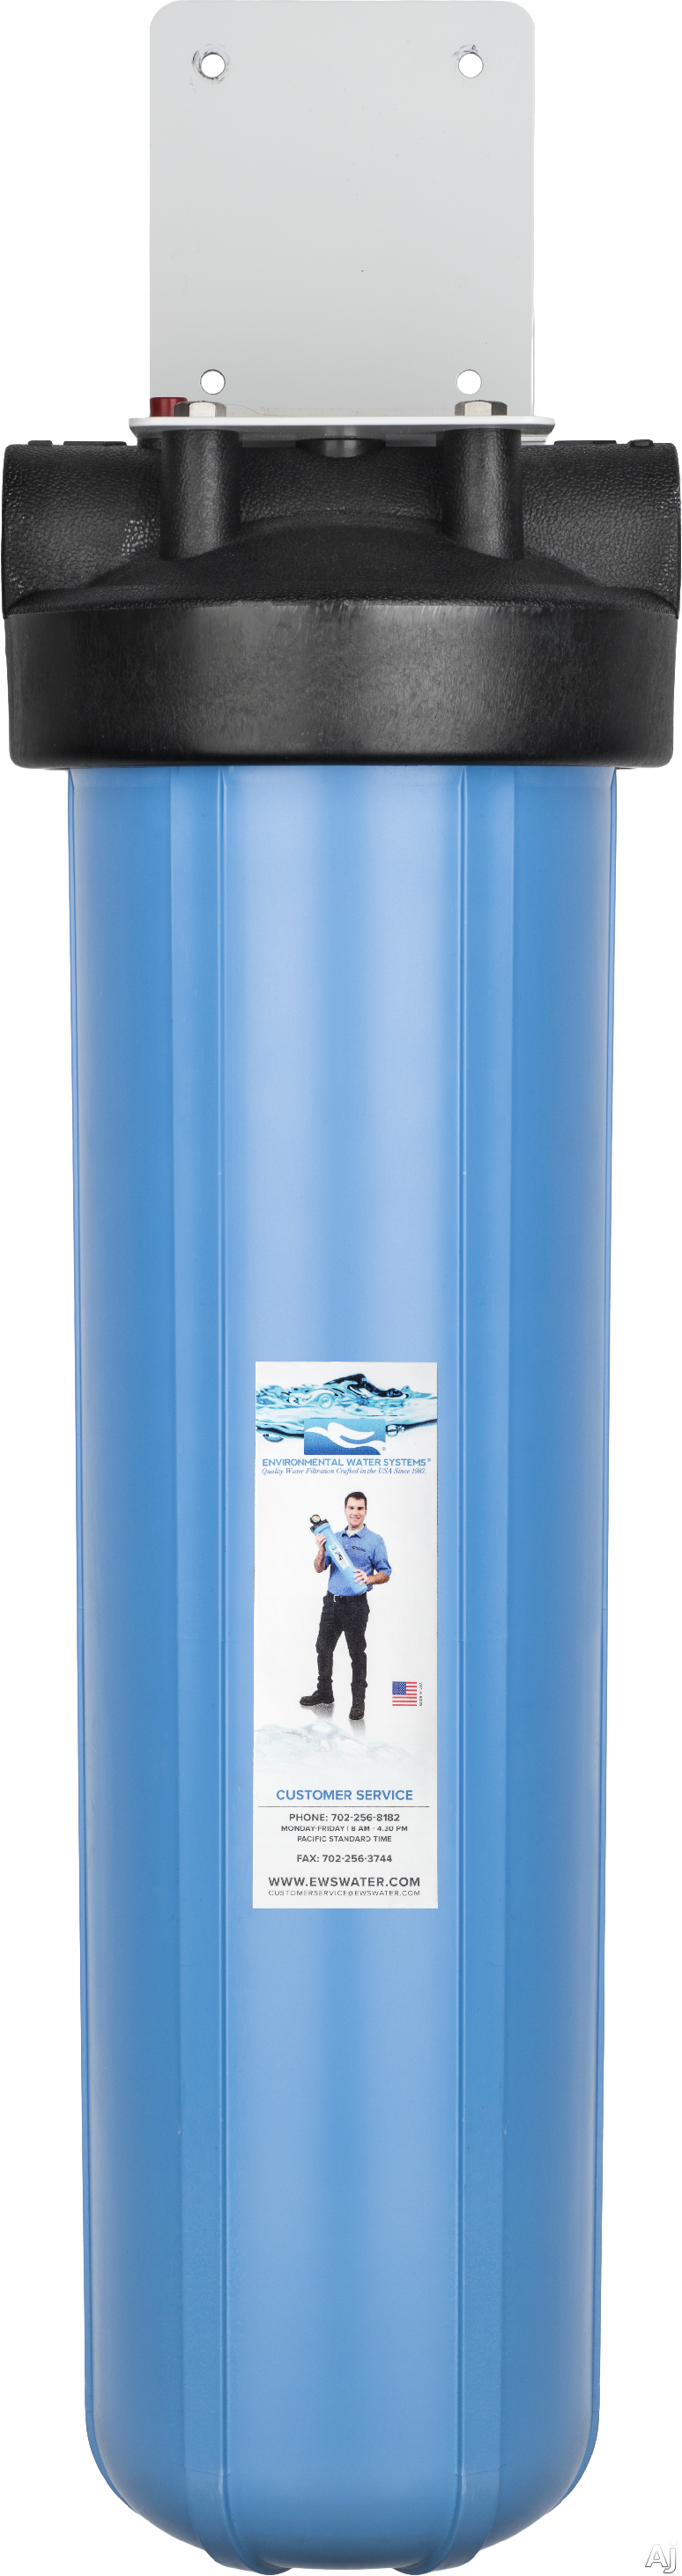 Environmental Water Systems BB112SETUP Point of Entry Pre-Sediment Cartridge Unit with 1-1/2